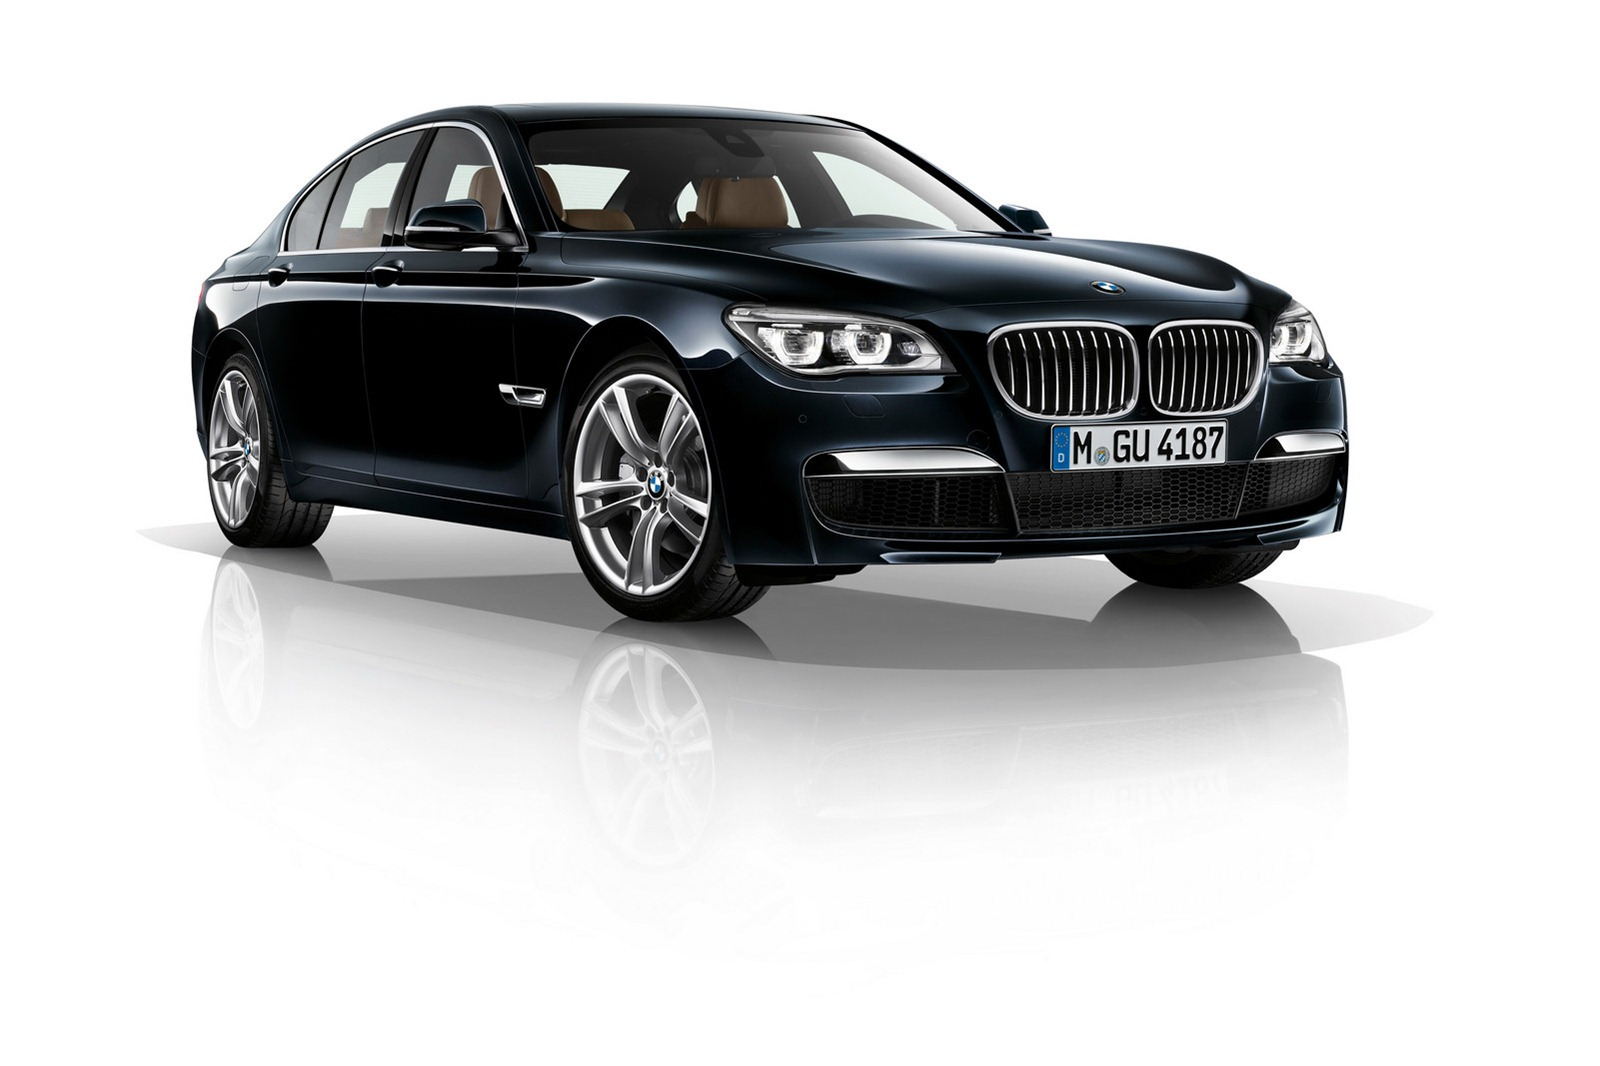 Temple Hills BMW 7 Series For Sale  Used BMW 7 Series Cars Trucks